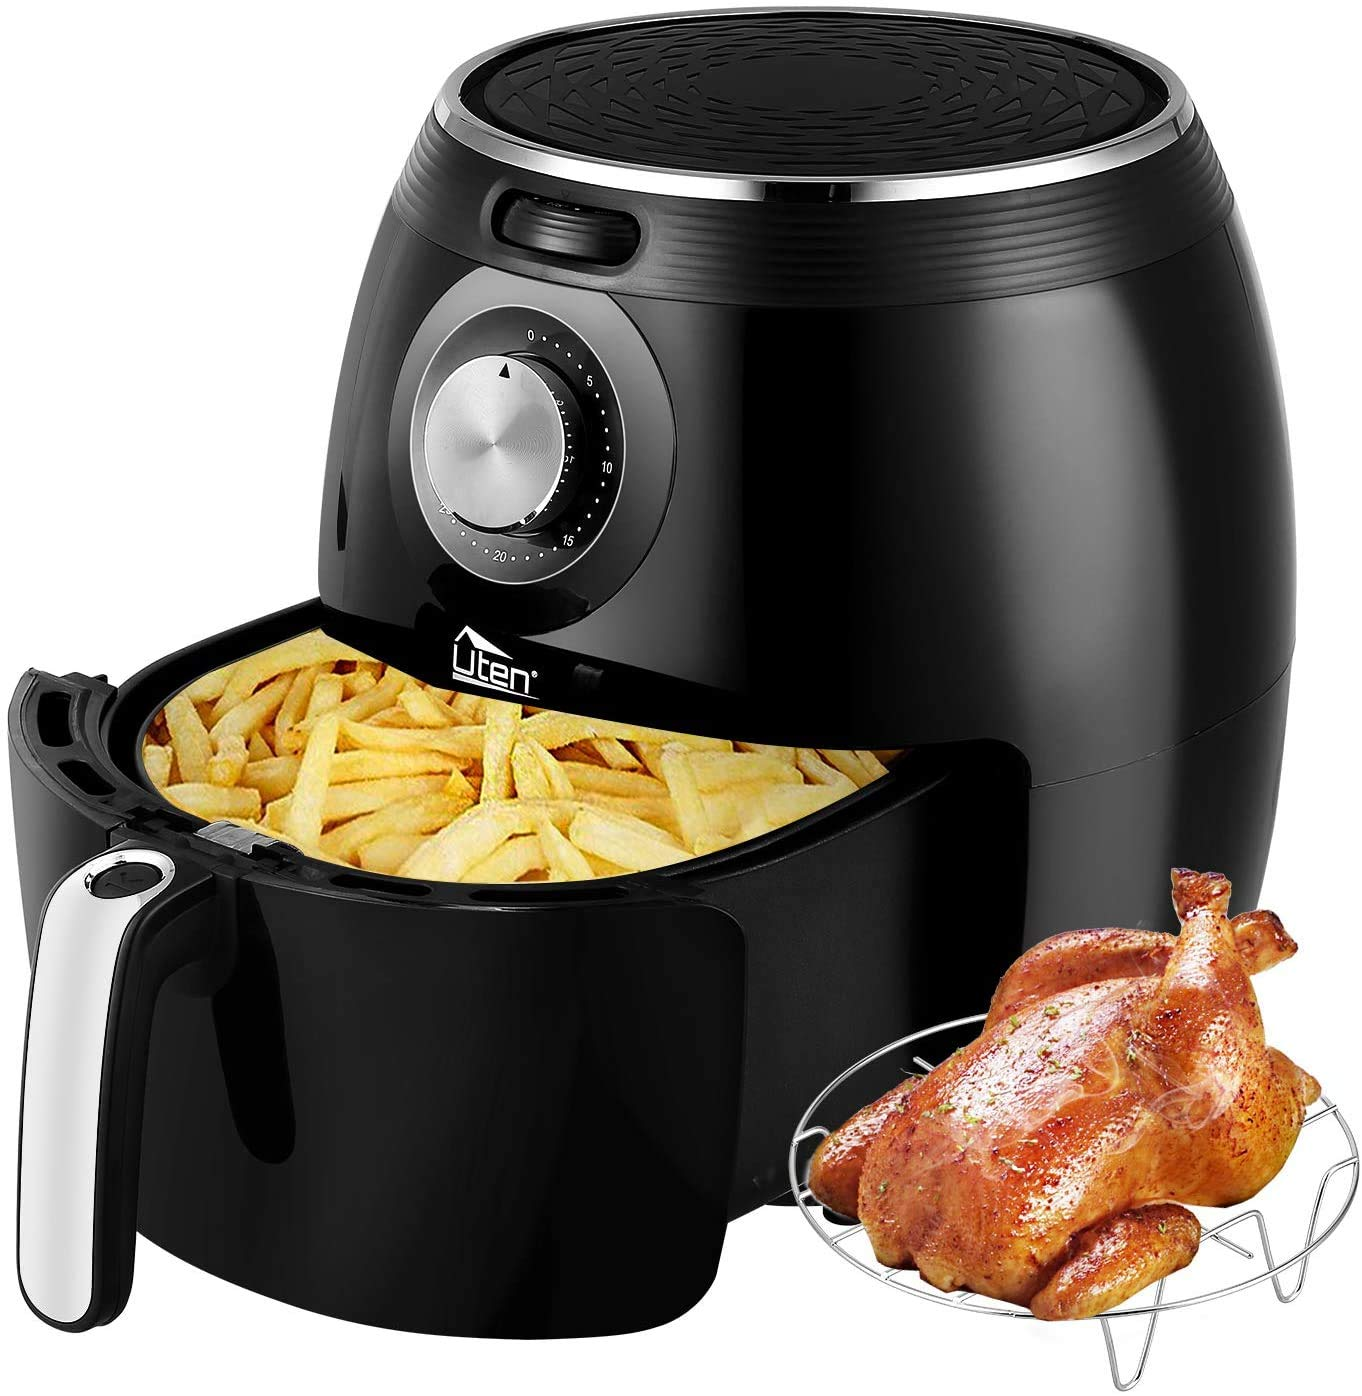 Uten Air Fryer XL, 5.8QT 1700W Electric Hot Air Fryer with Temperature Control & Timer Knob, Fast Oven Oilless Cooker with Grill Rack , Non Stick Fry Basket, Dishwasher Safe, UL Listed - Black